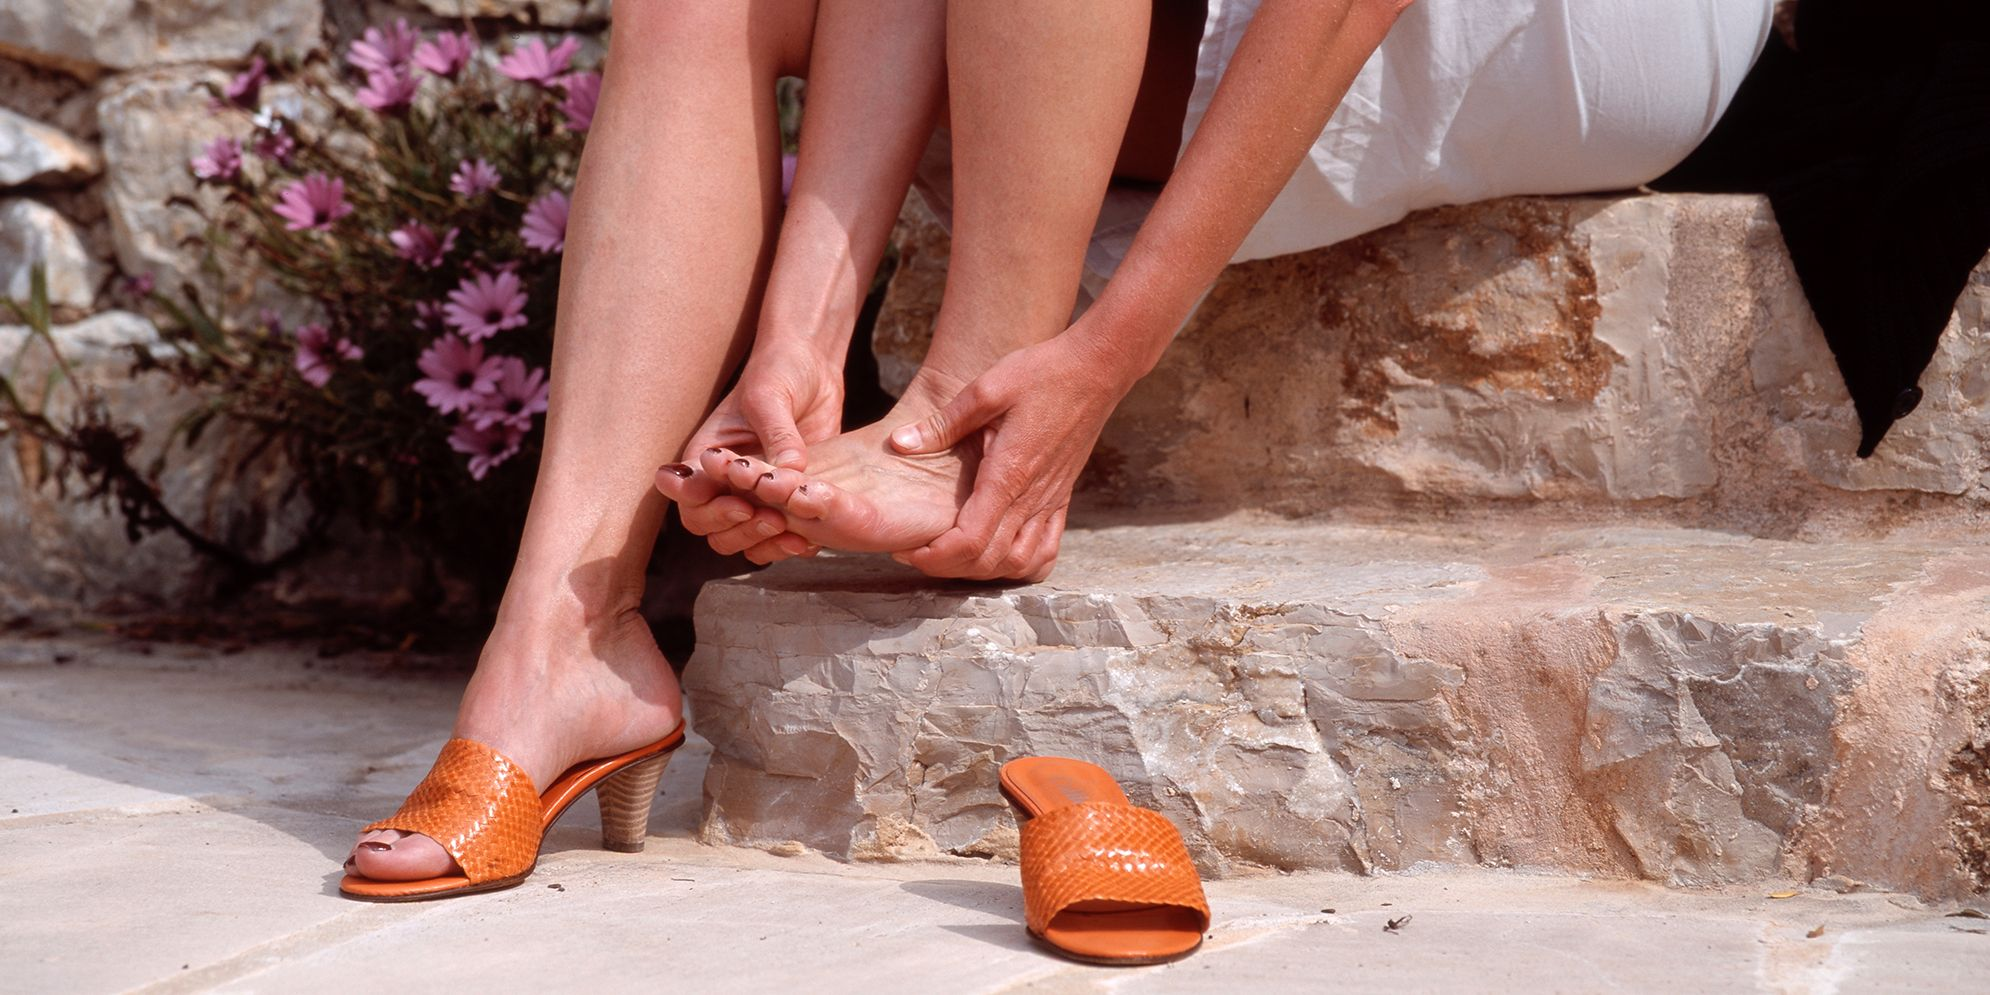 Summer footwear hacks: how to stop your feet from rubbing and smelling this summer